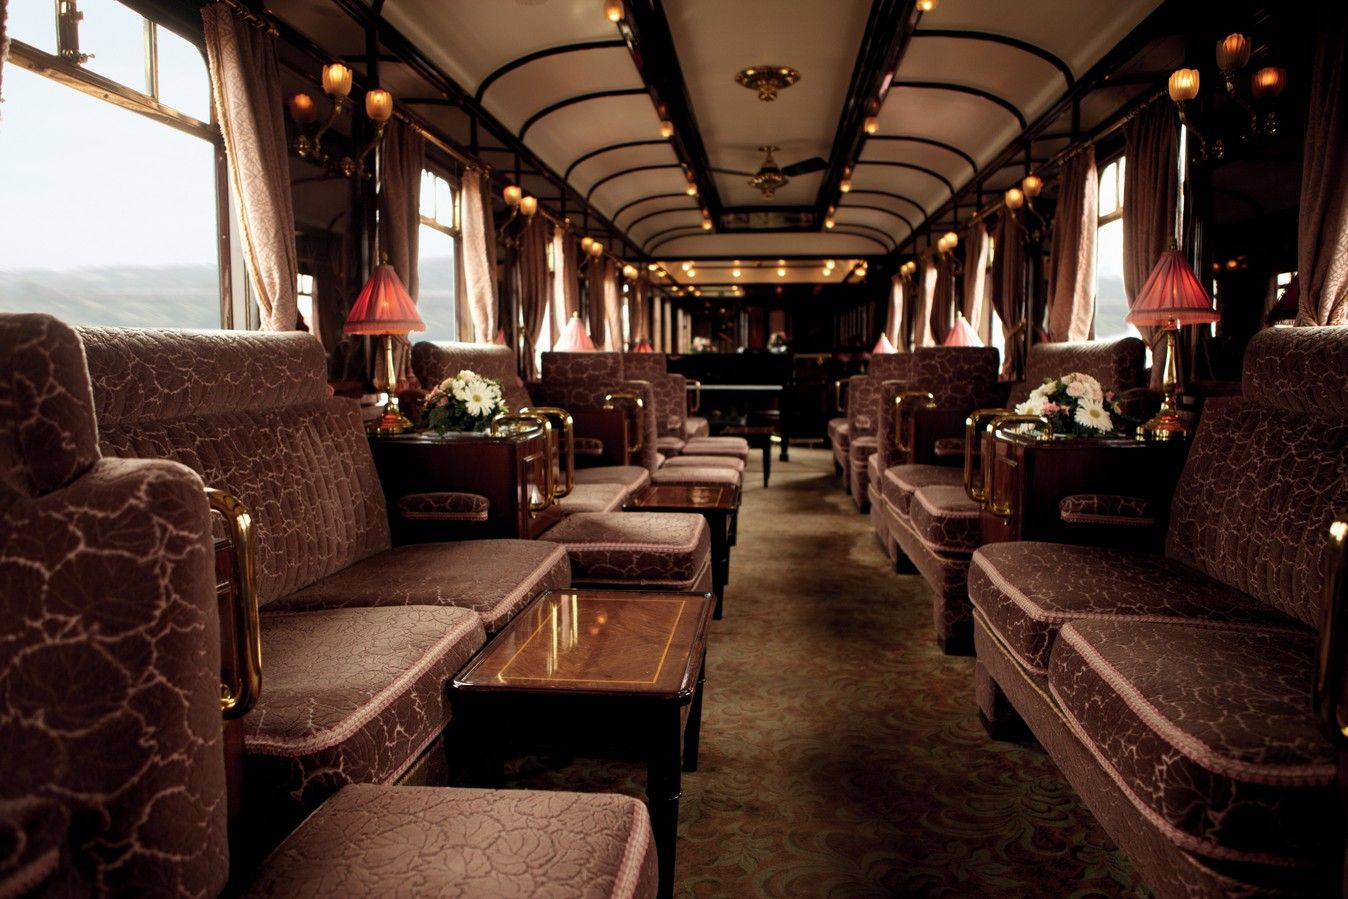 Venice Simplon Orient Express See The World Through Travel These Train Journeys